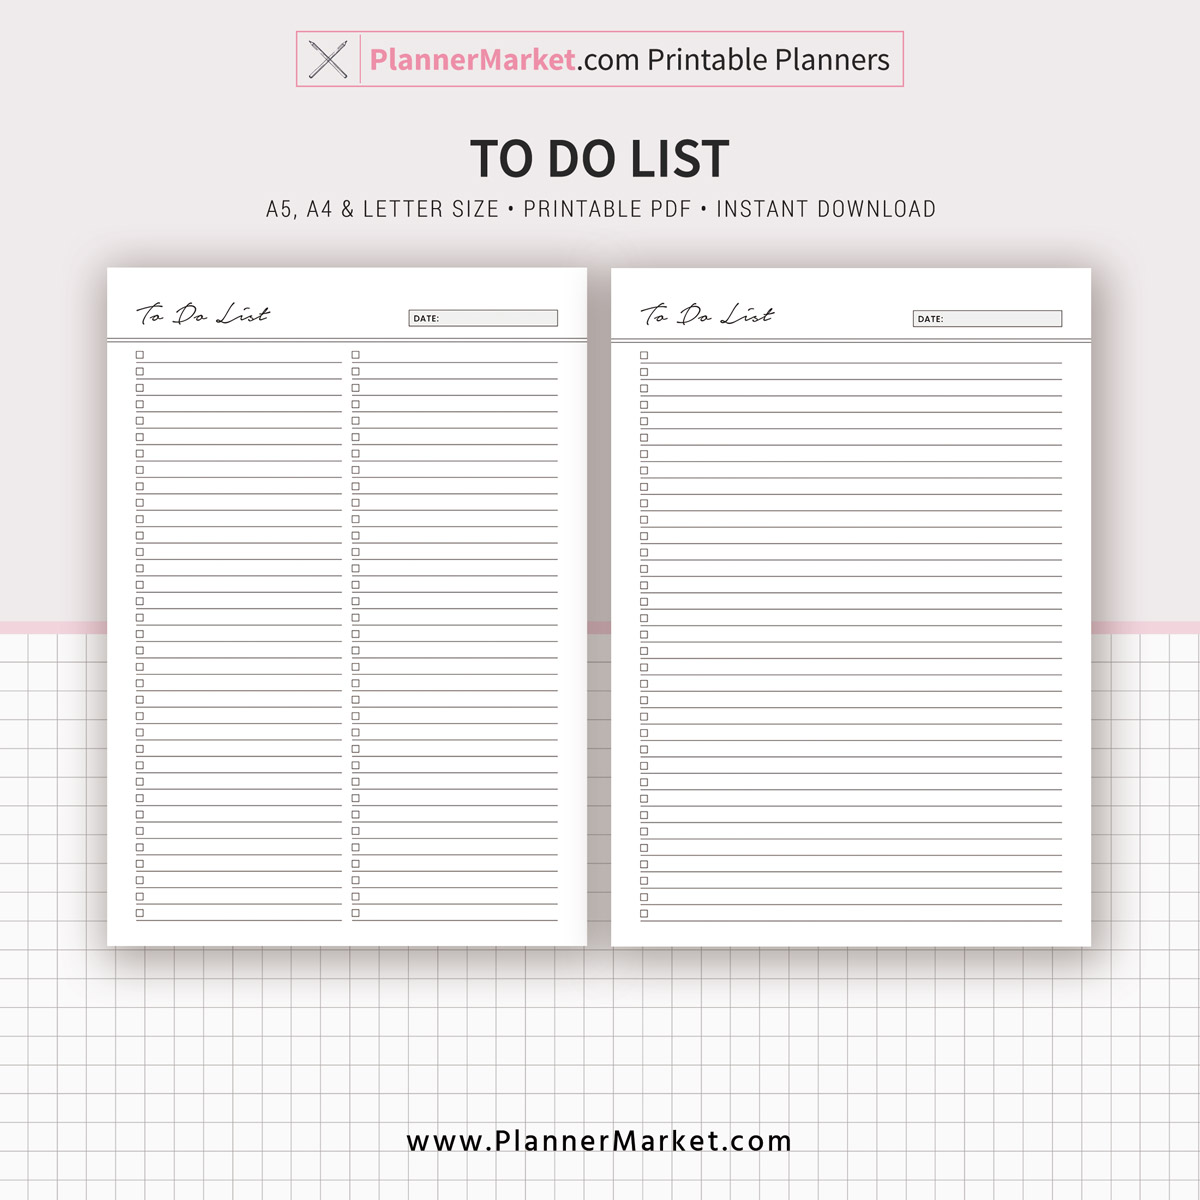 To Do List Planner A5 A4 Letter Size Printable